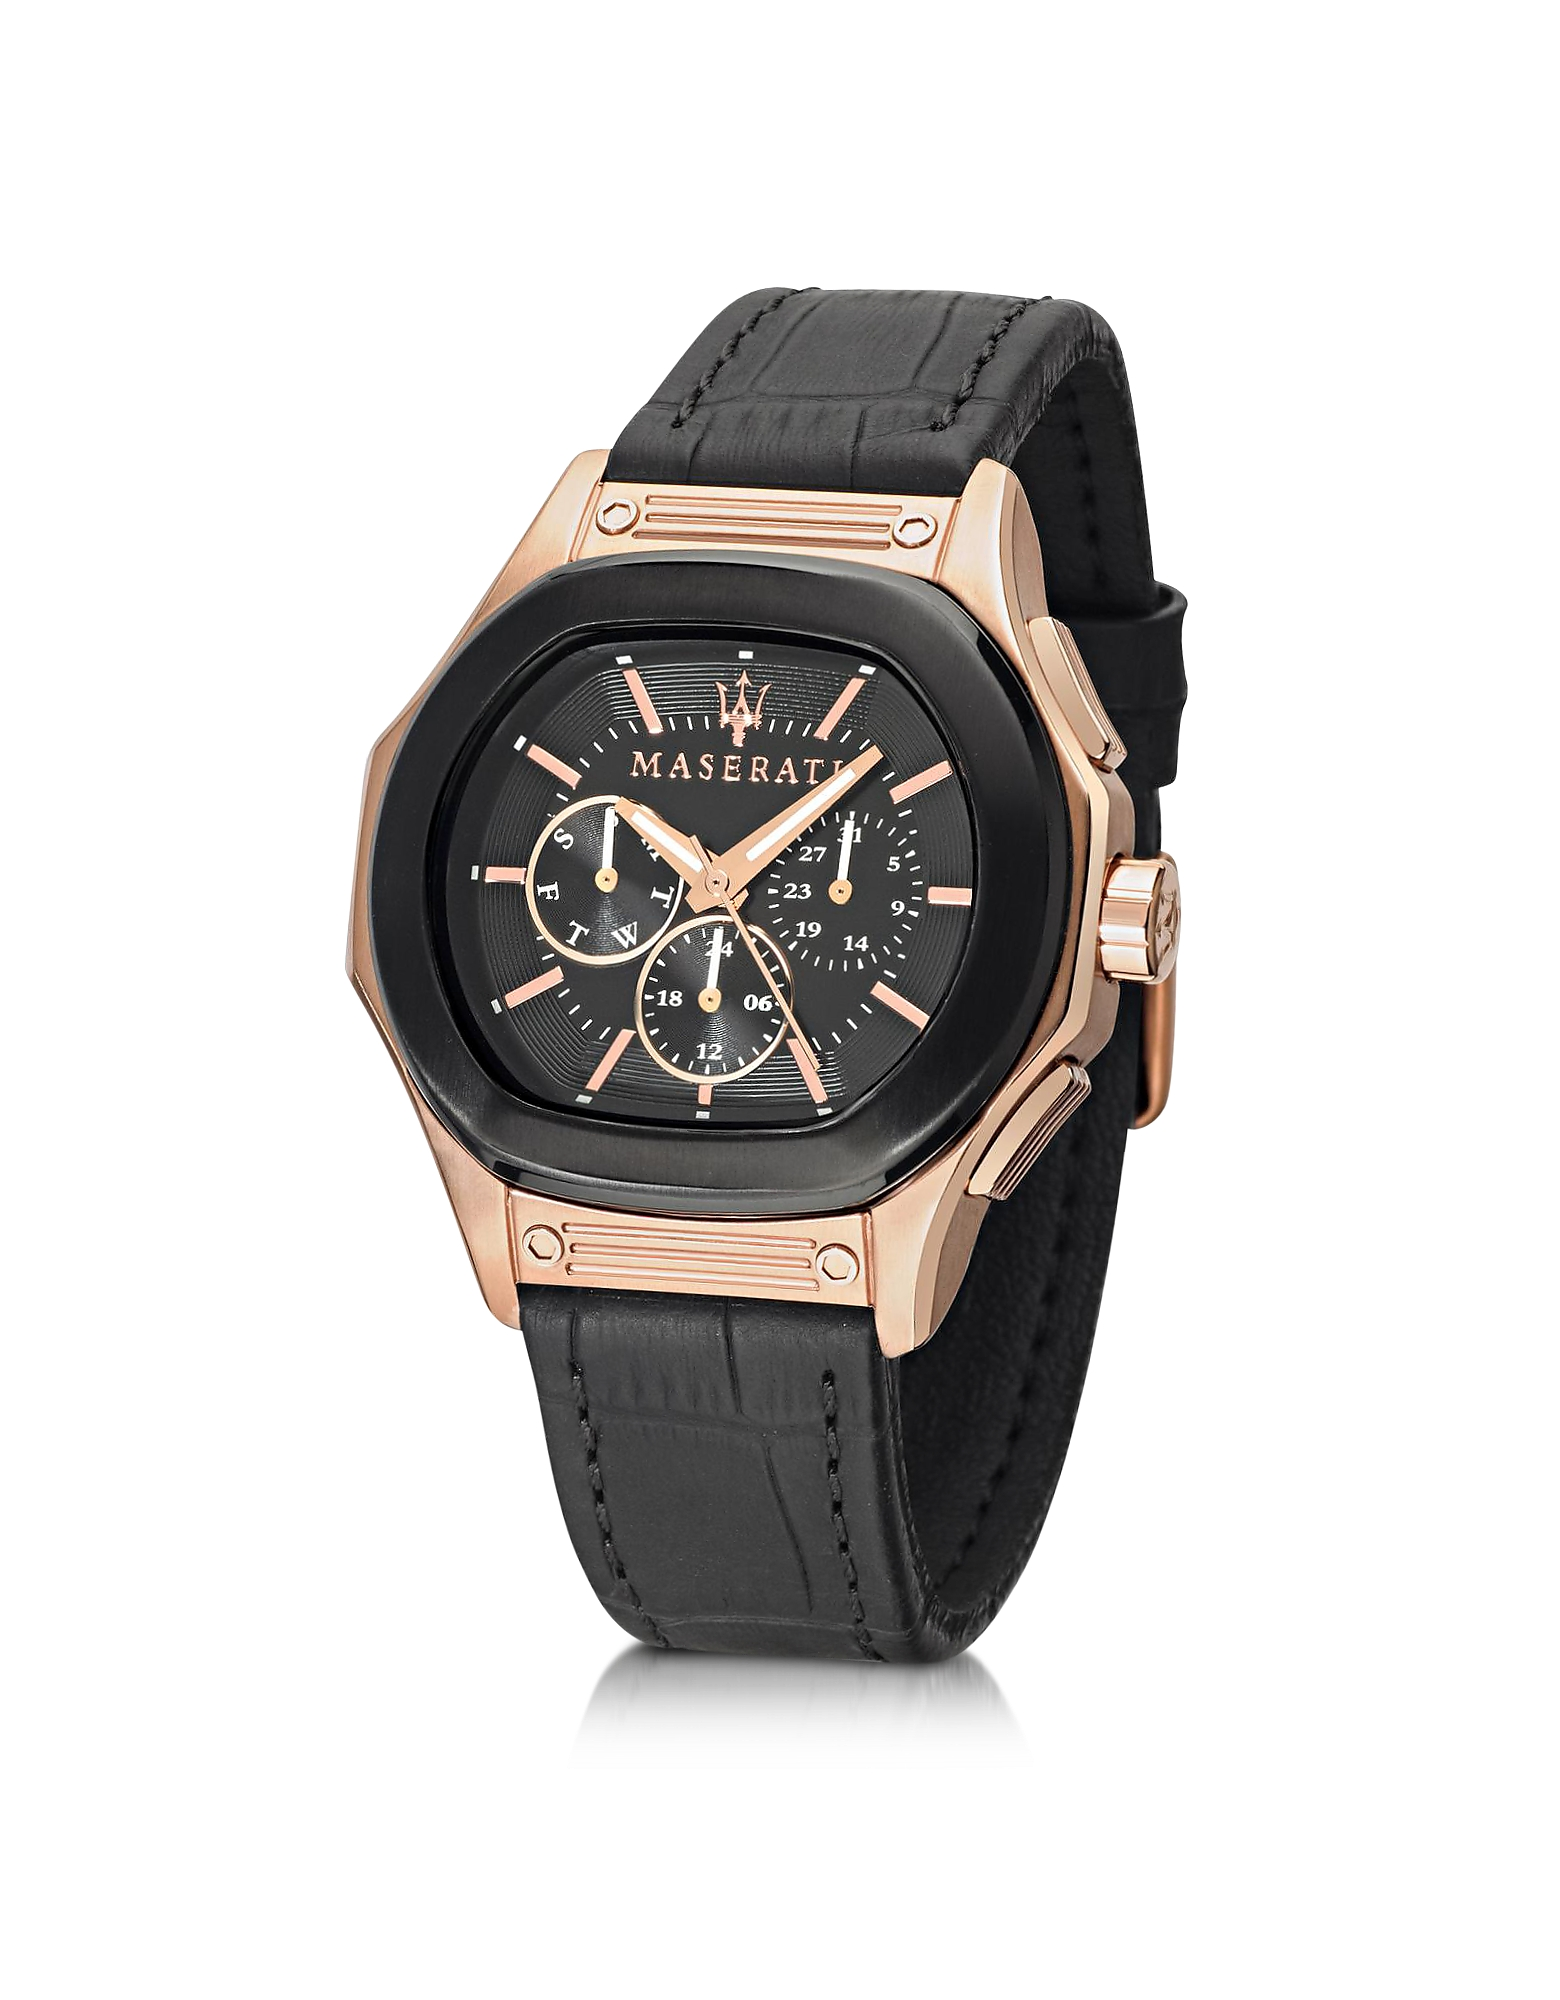 Maserati Men's Watches, Fuoriclasse Multi-Function Dial and Black Eco-Leather Strap Men's Watch